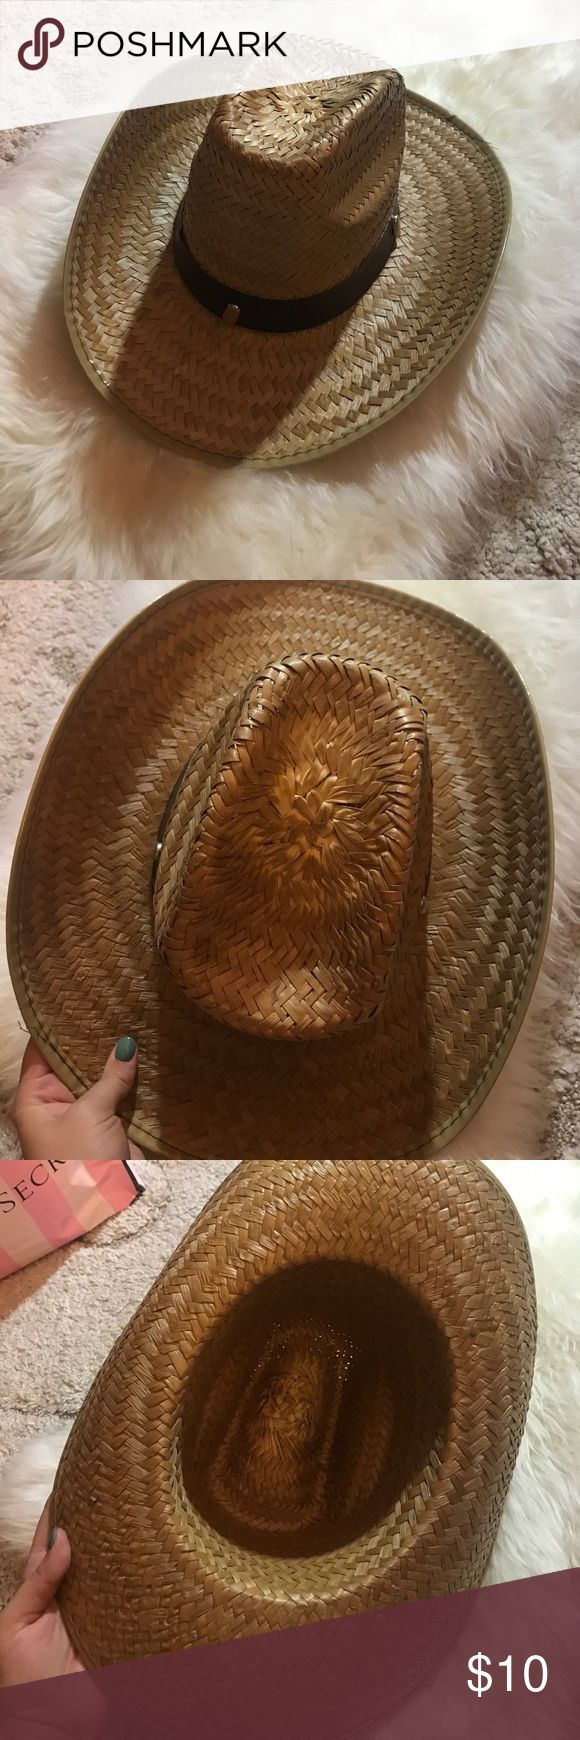 Cowboy Hat Nothing special quality-wise, some exposed staples and whatnot... but will totally work for a country concert or costume purposes. Accessories Hats